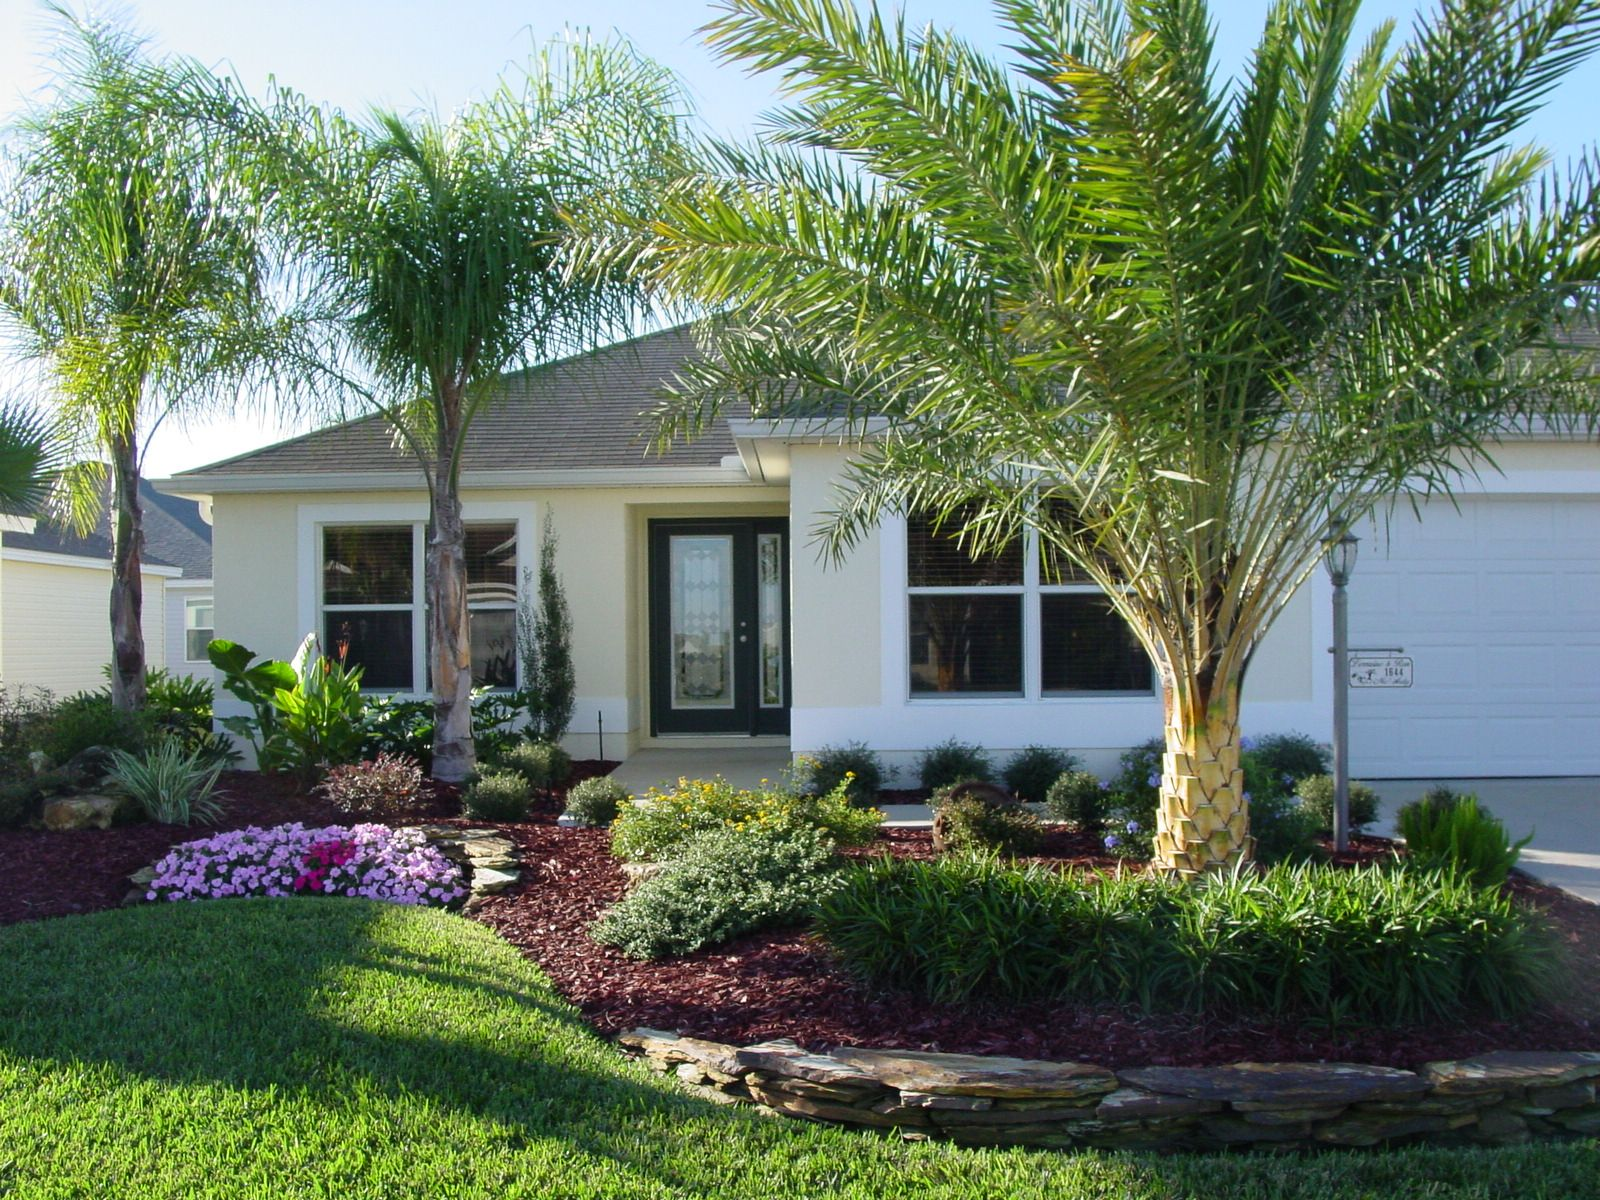 Superb Florida Landscaping Ideas | Rons Landscaping Inc » About Us